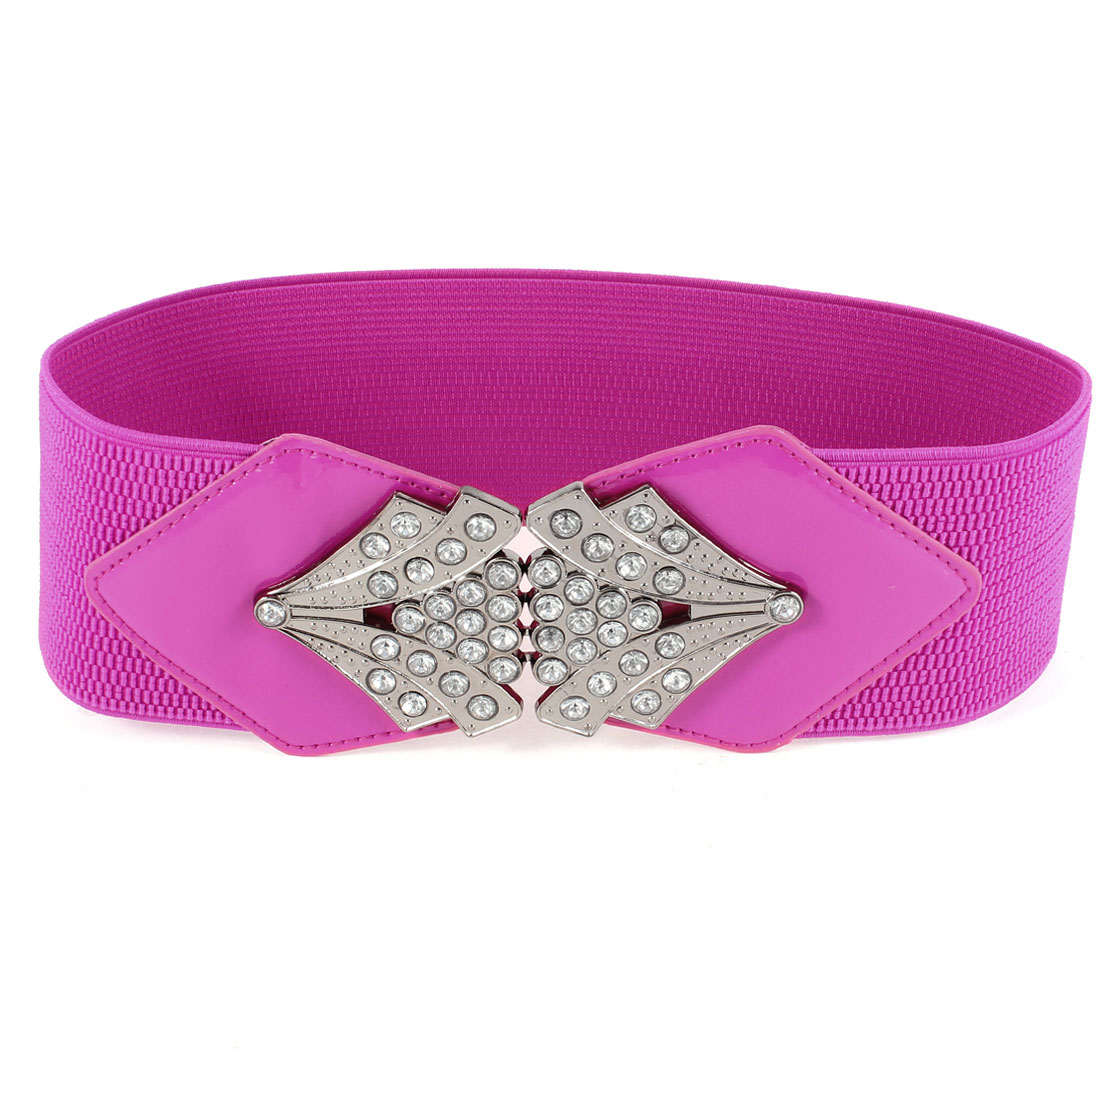 Lady Rhinestone Accent Interlock Buckle Stretchy Waist Belt Fuchsia